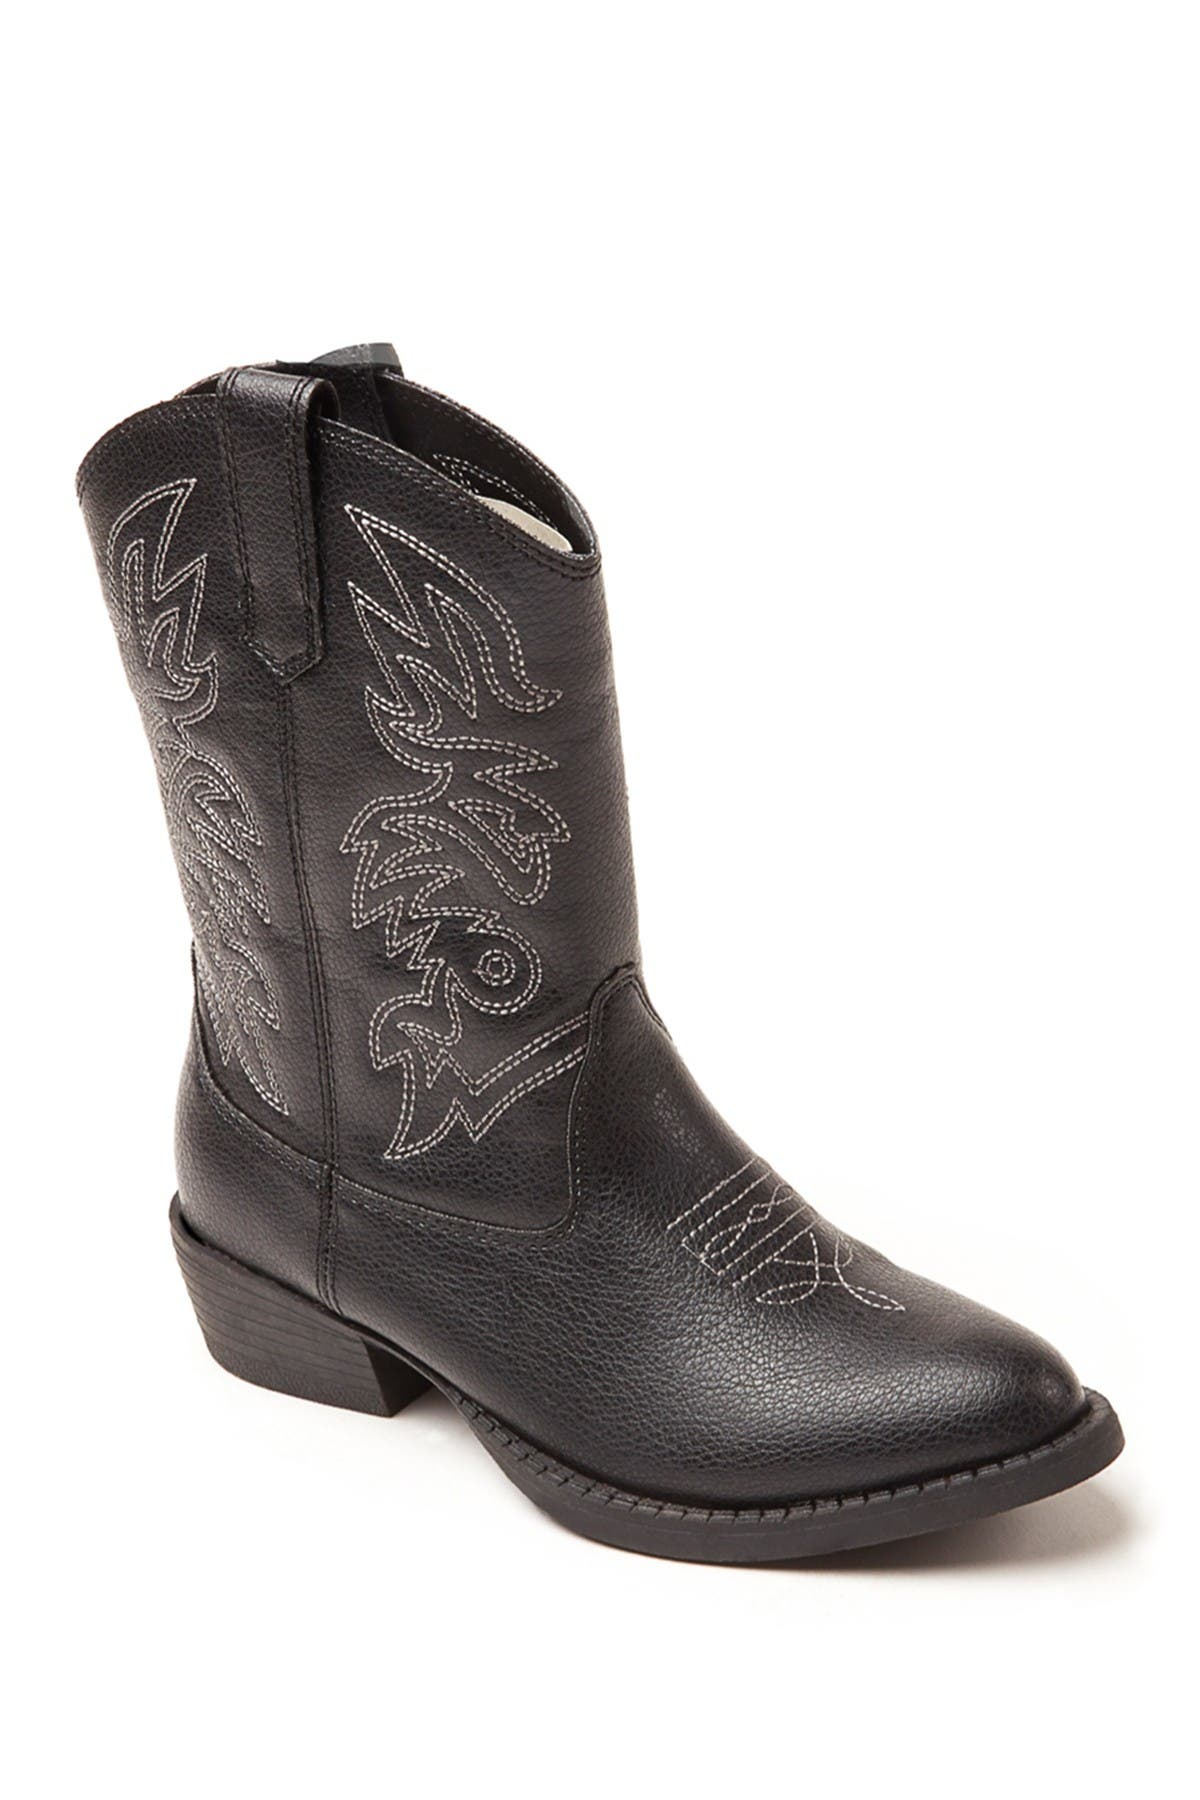 Image of Deer Stags Ranch Embroidered Stitched Cowboy Boot